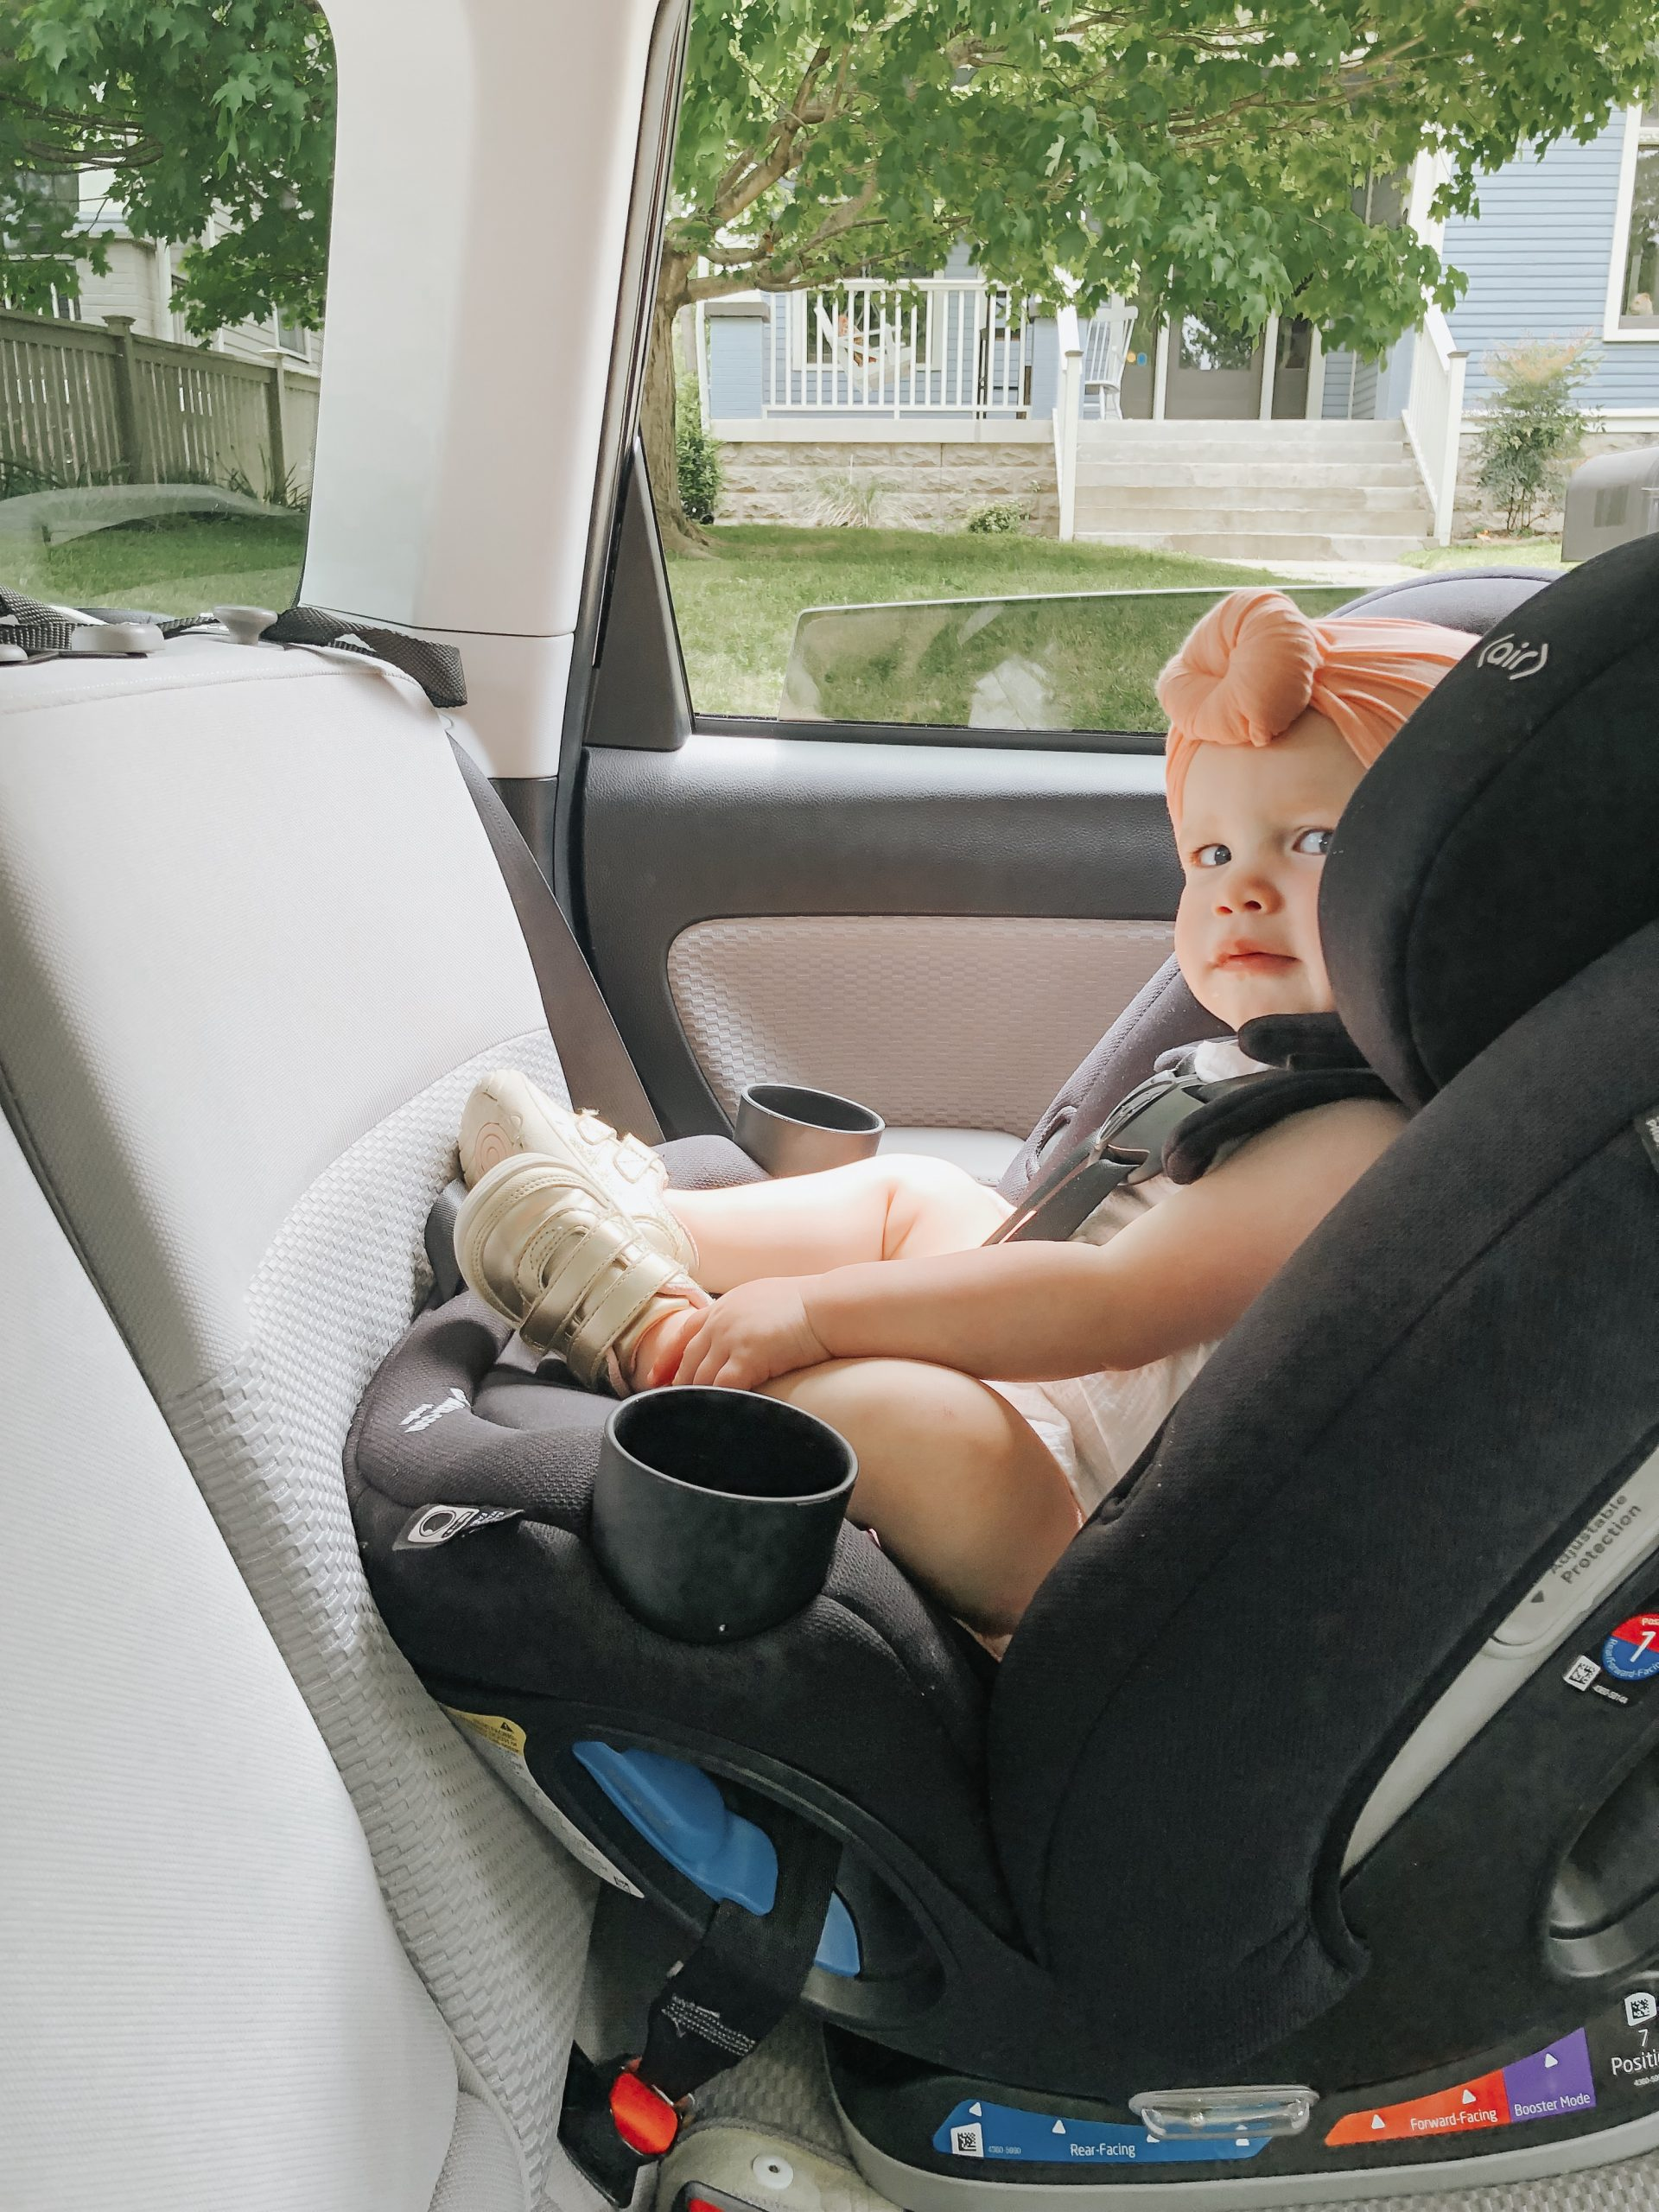 roadtripping with toddlers and infants: tips + tricks